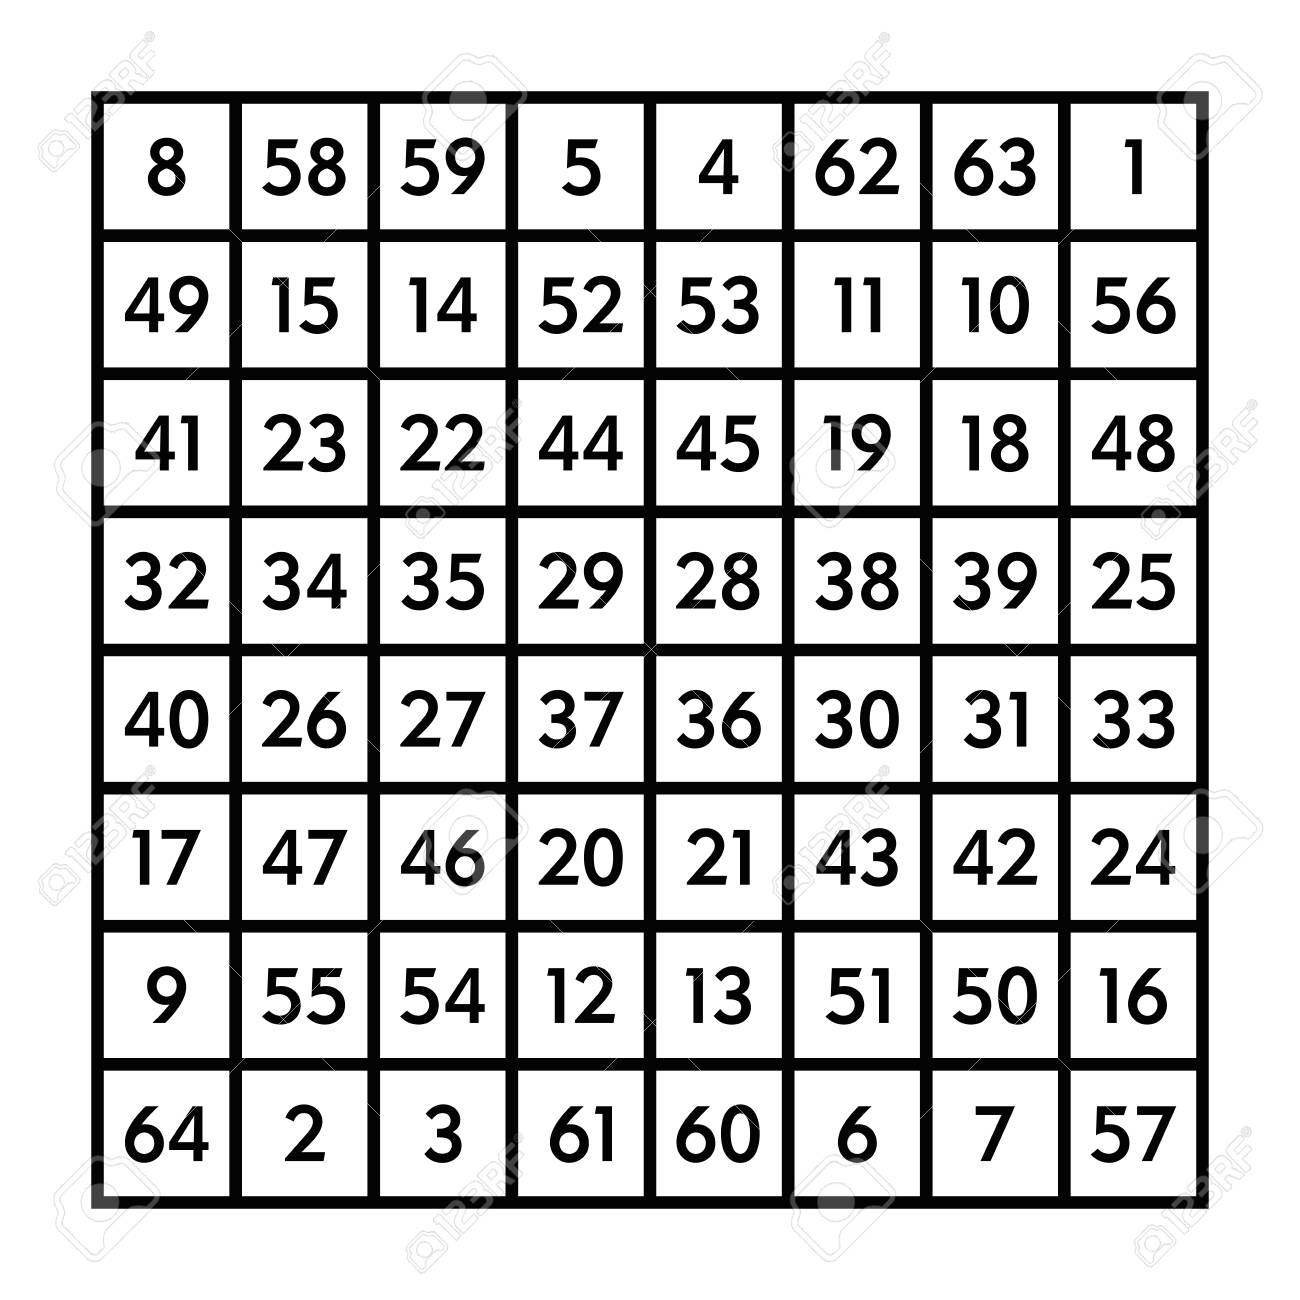 8x8 magic square of order 8 and astrological planet Mercury with